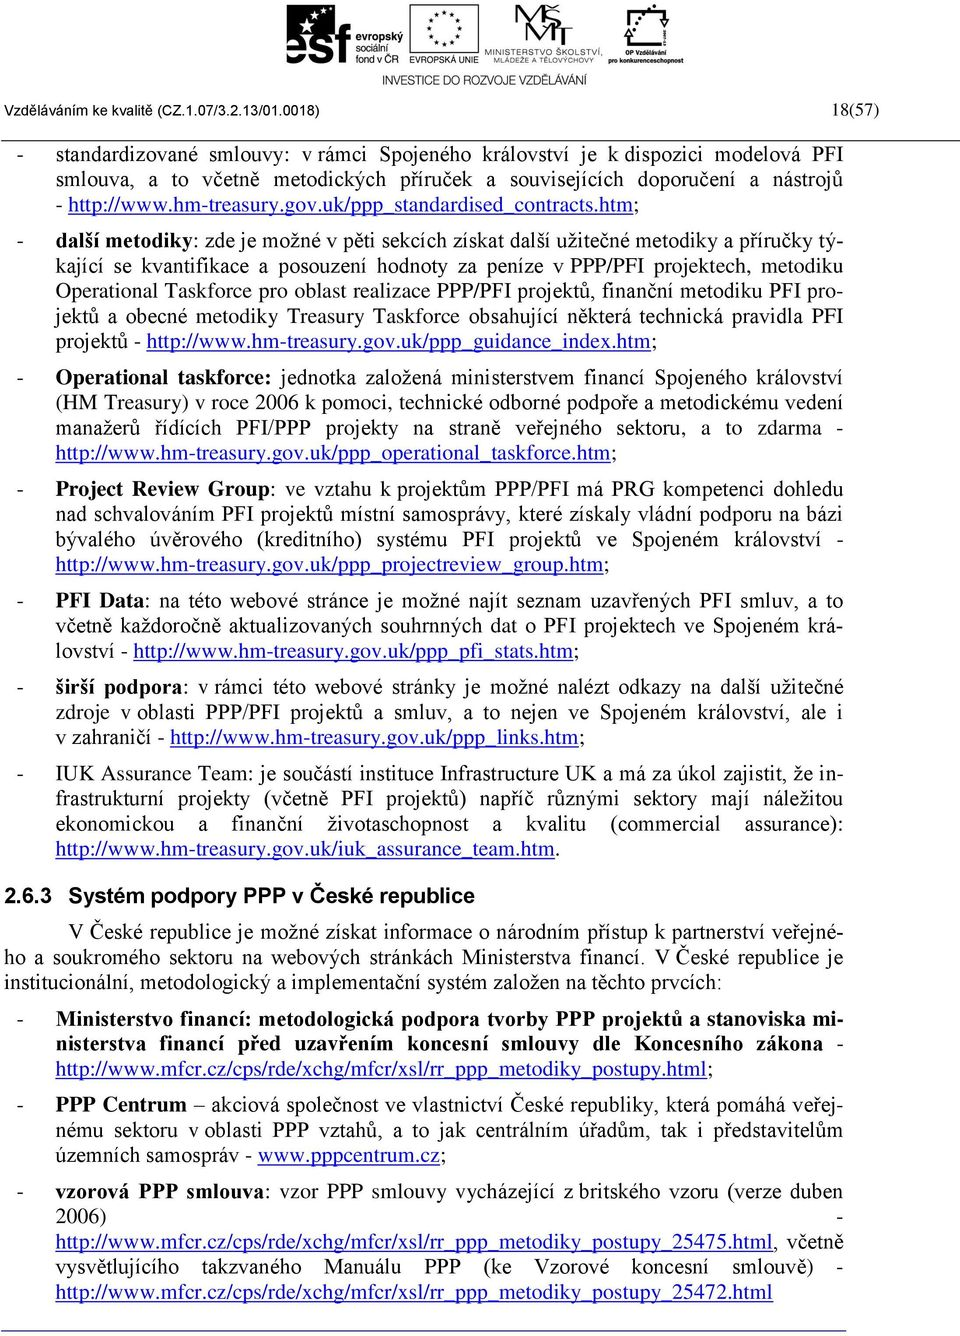 hm-treasury.gov.uk/ppp_standardised_contracts.